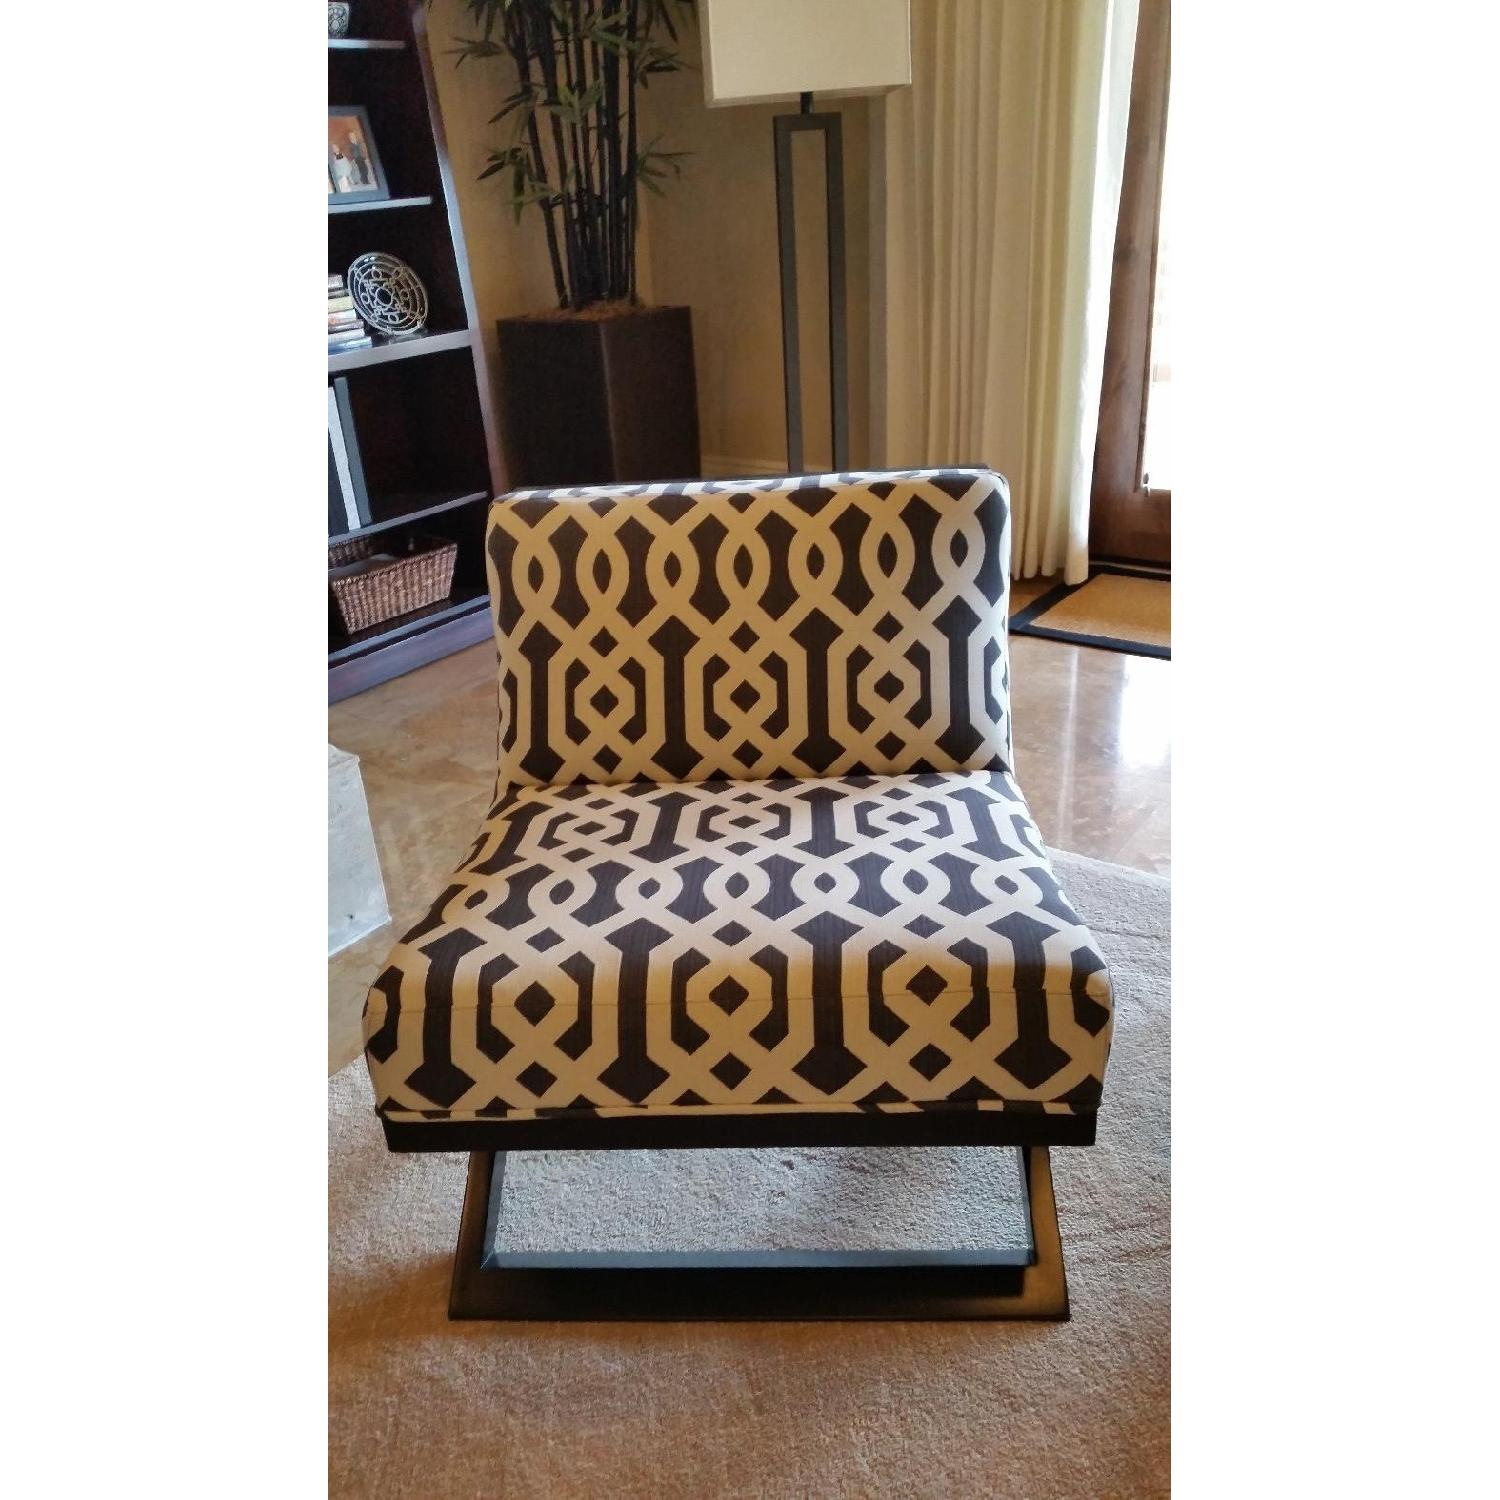 American Leather Black & White Modern Accent Chairs - image-1